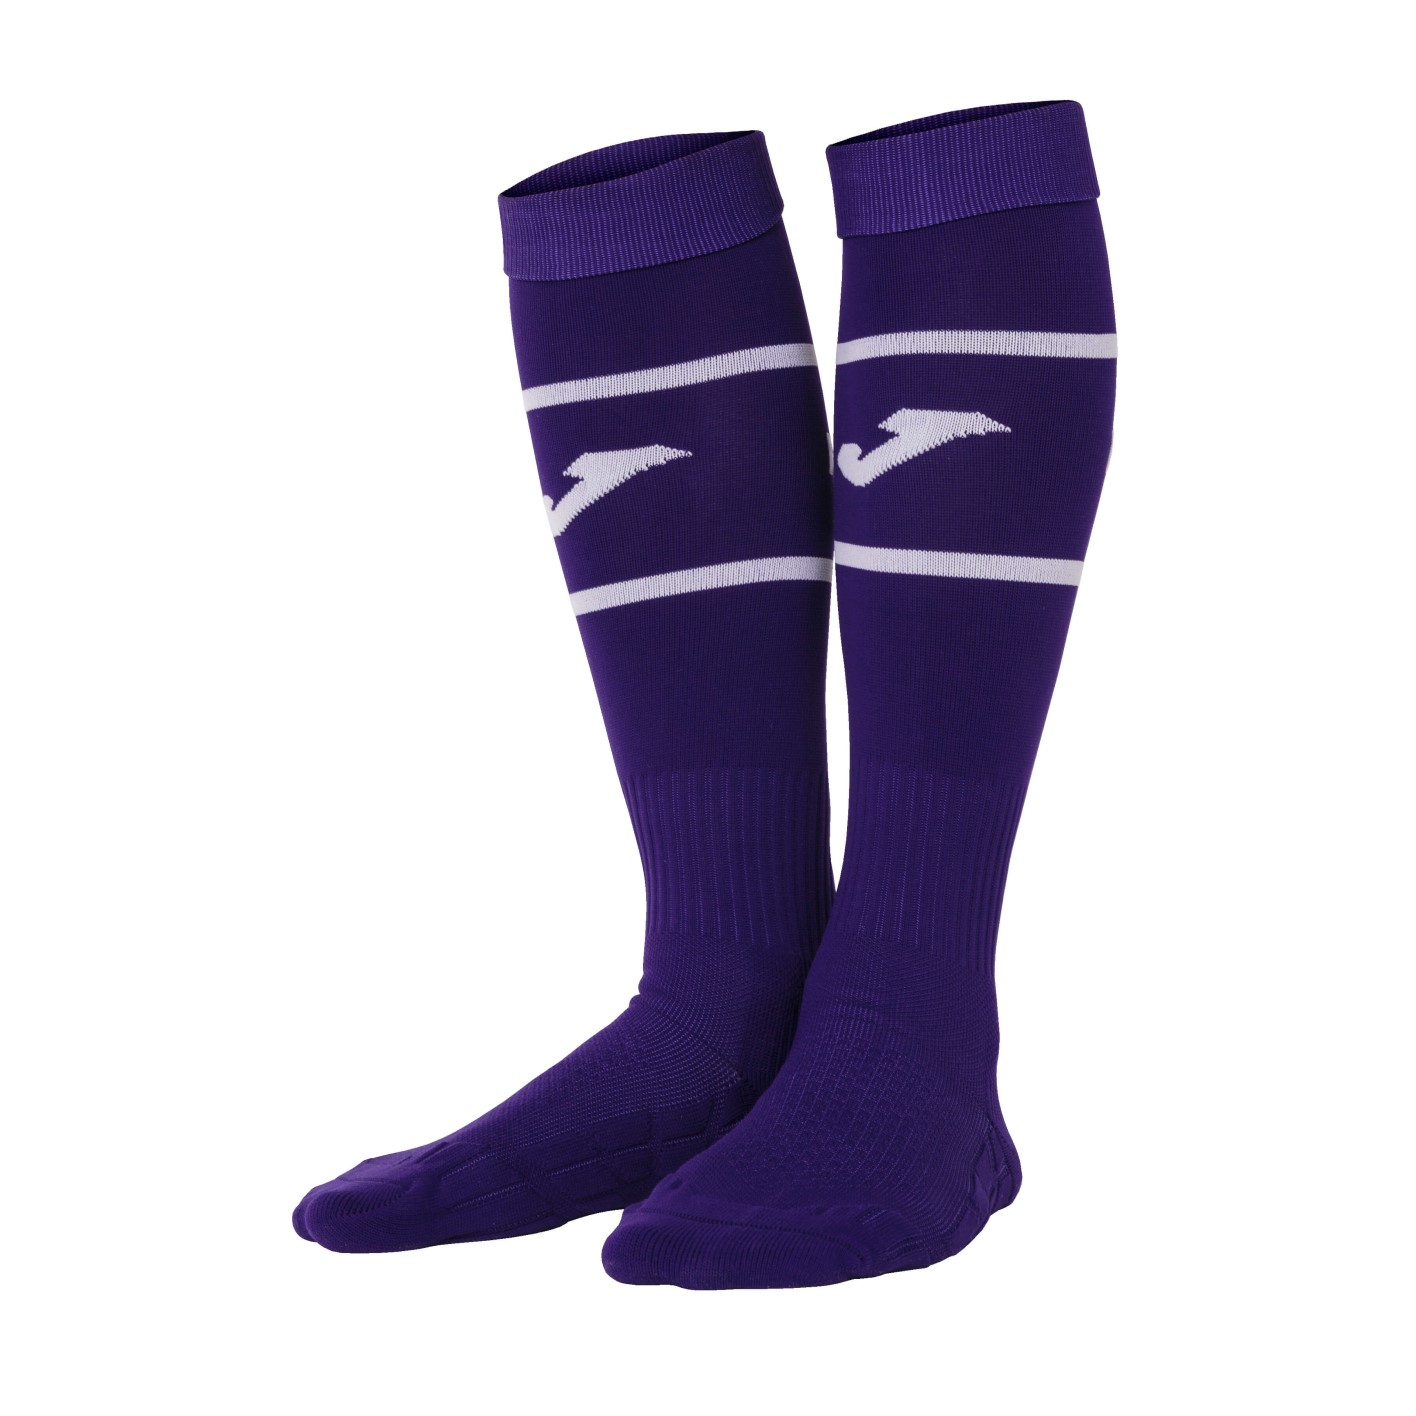 RSCA Home Socks 2020/2021